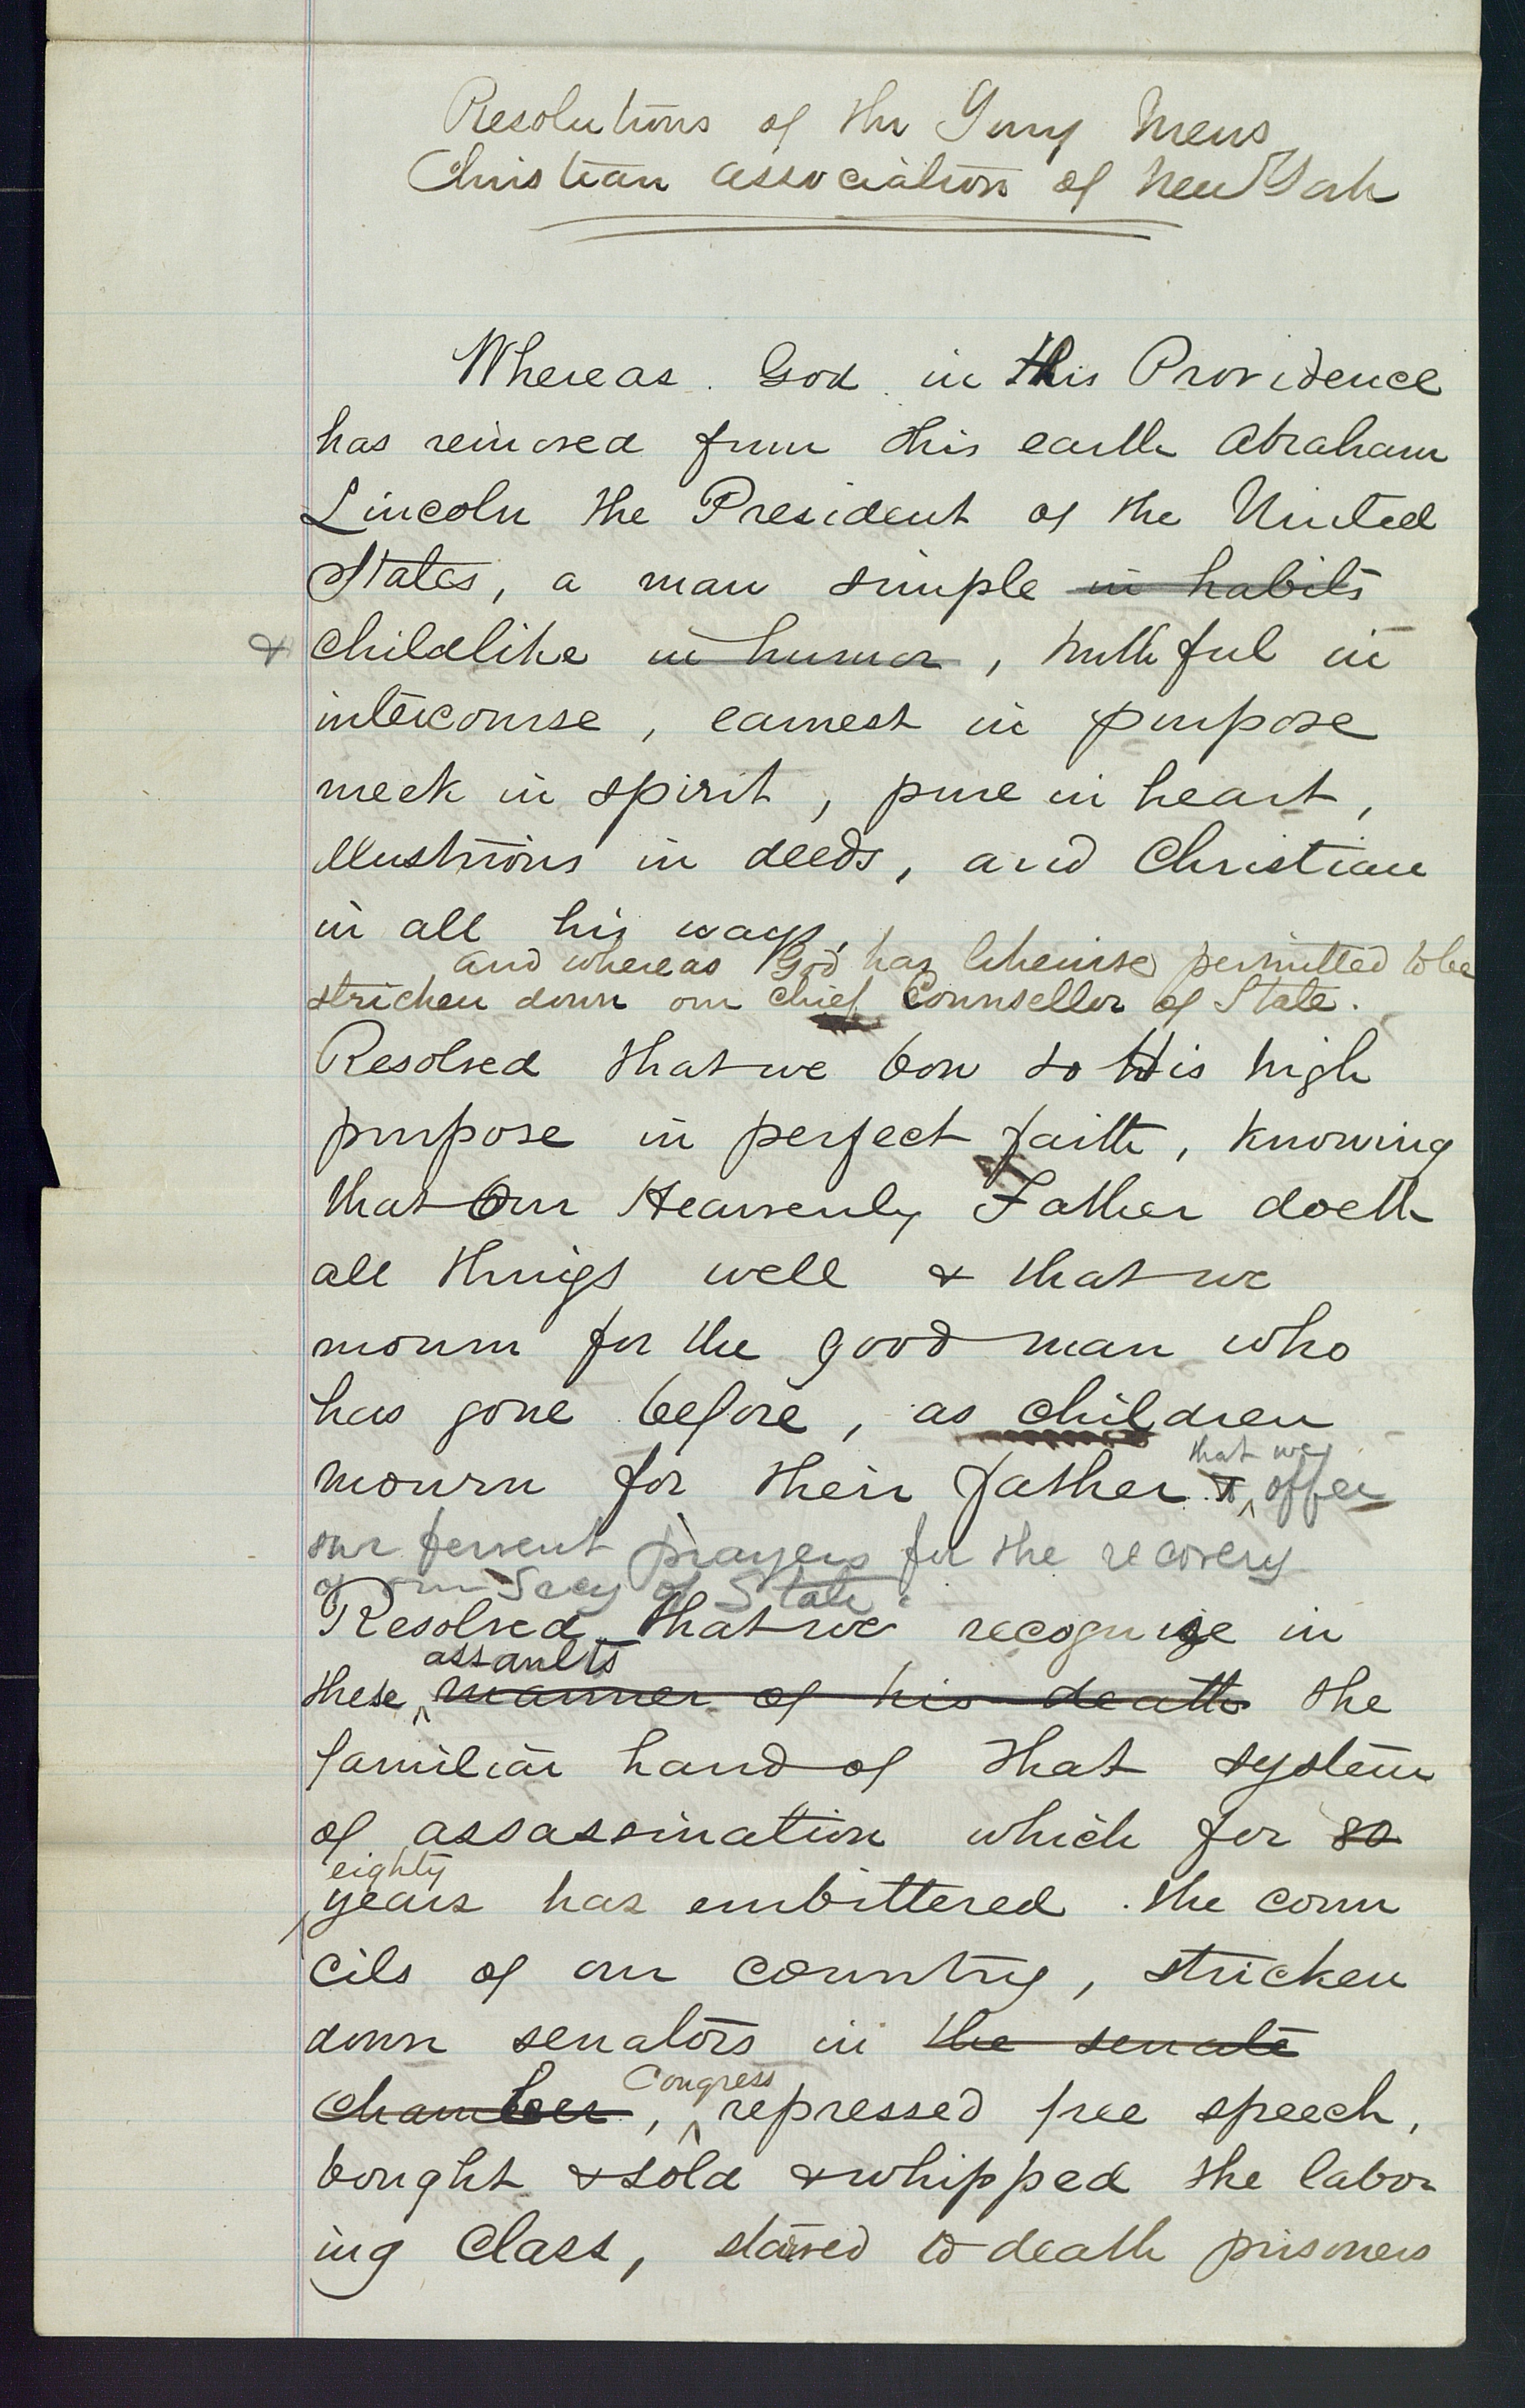 Resolutions of the YMCA on the Death of Abraham Lincoln